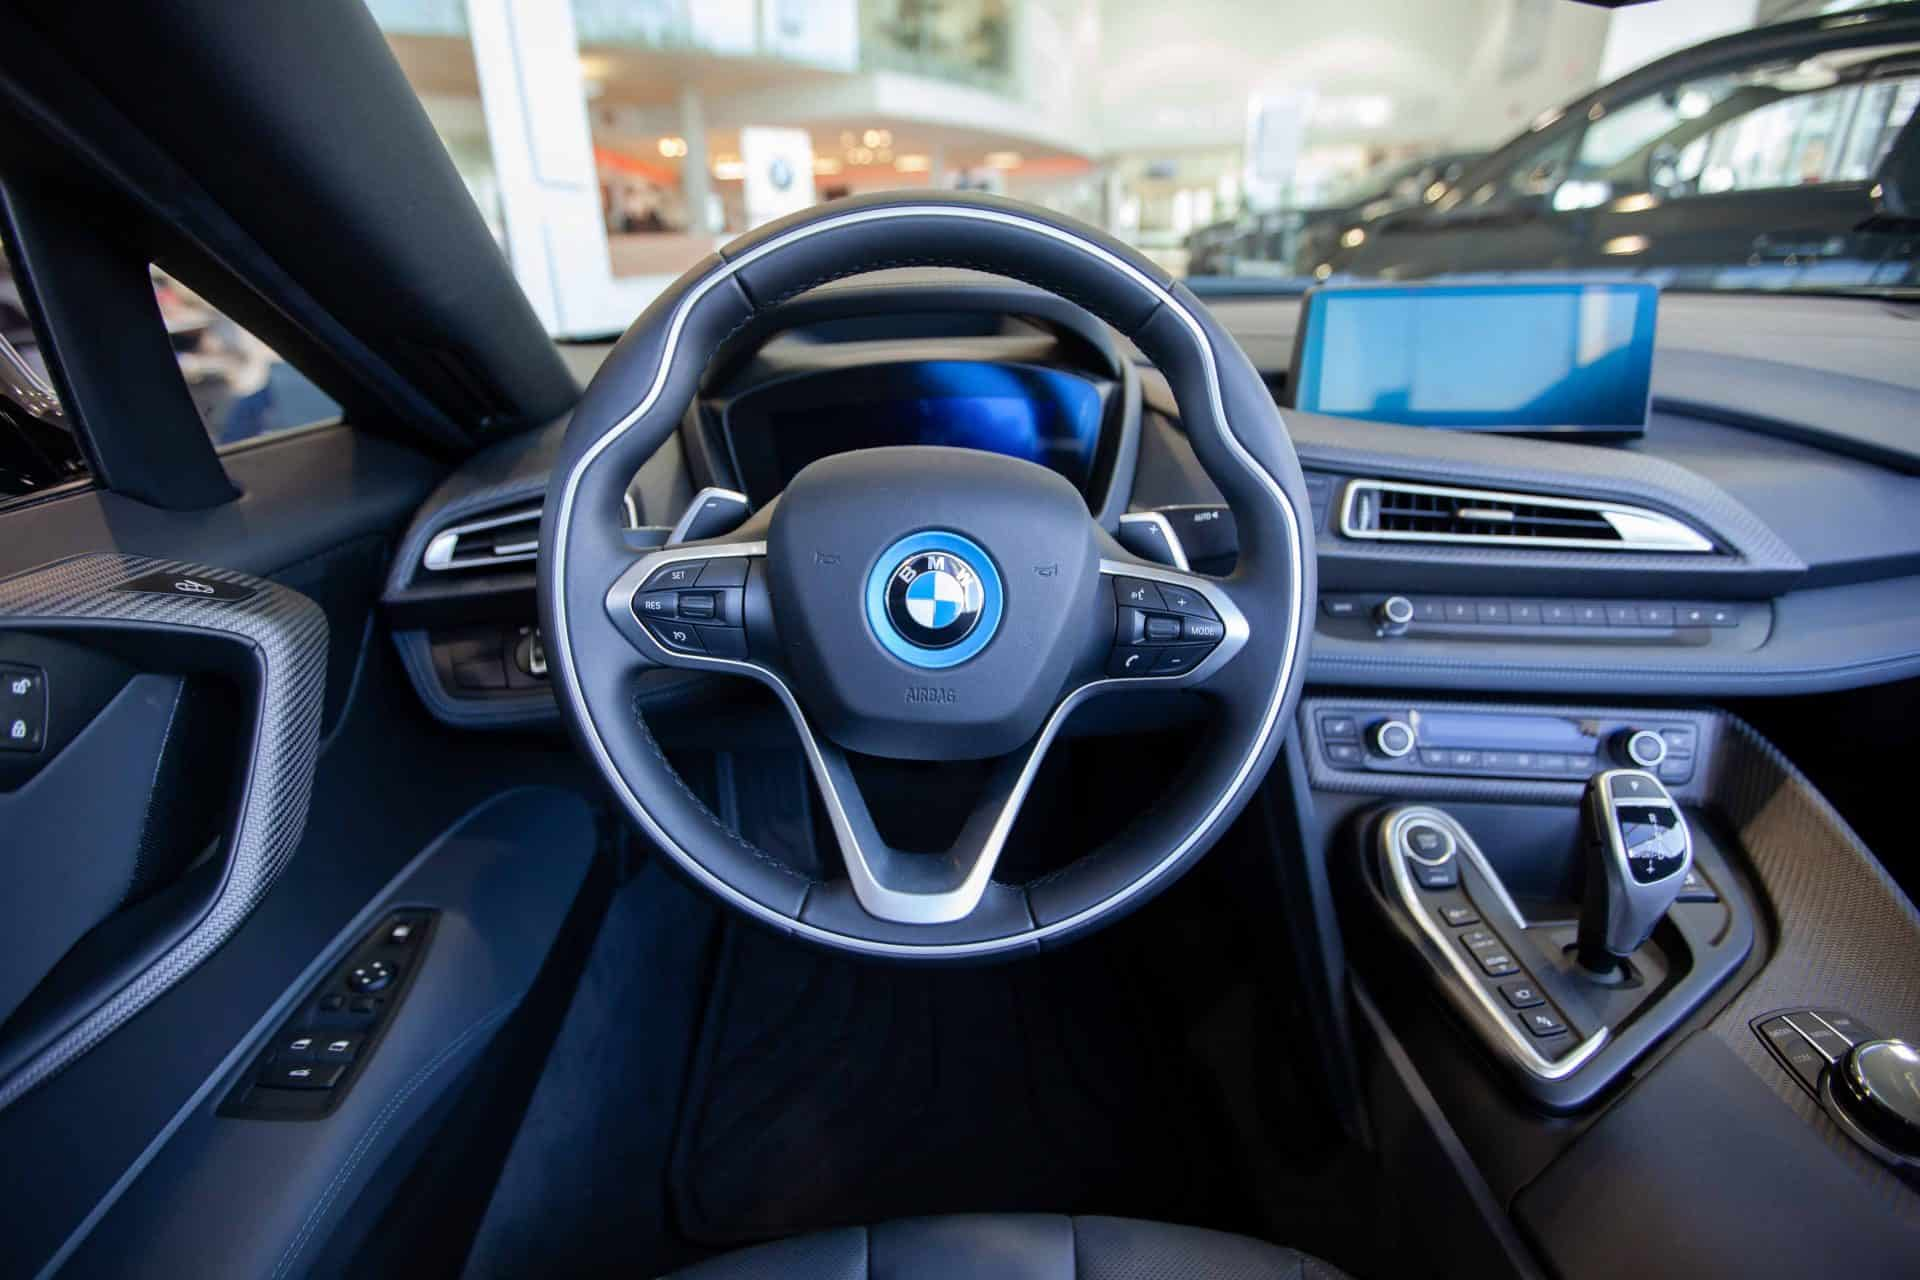 bmw-i8-wheel-richteamedia360